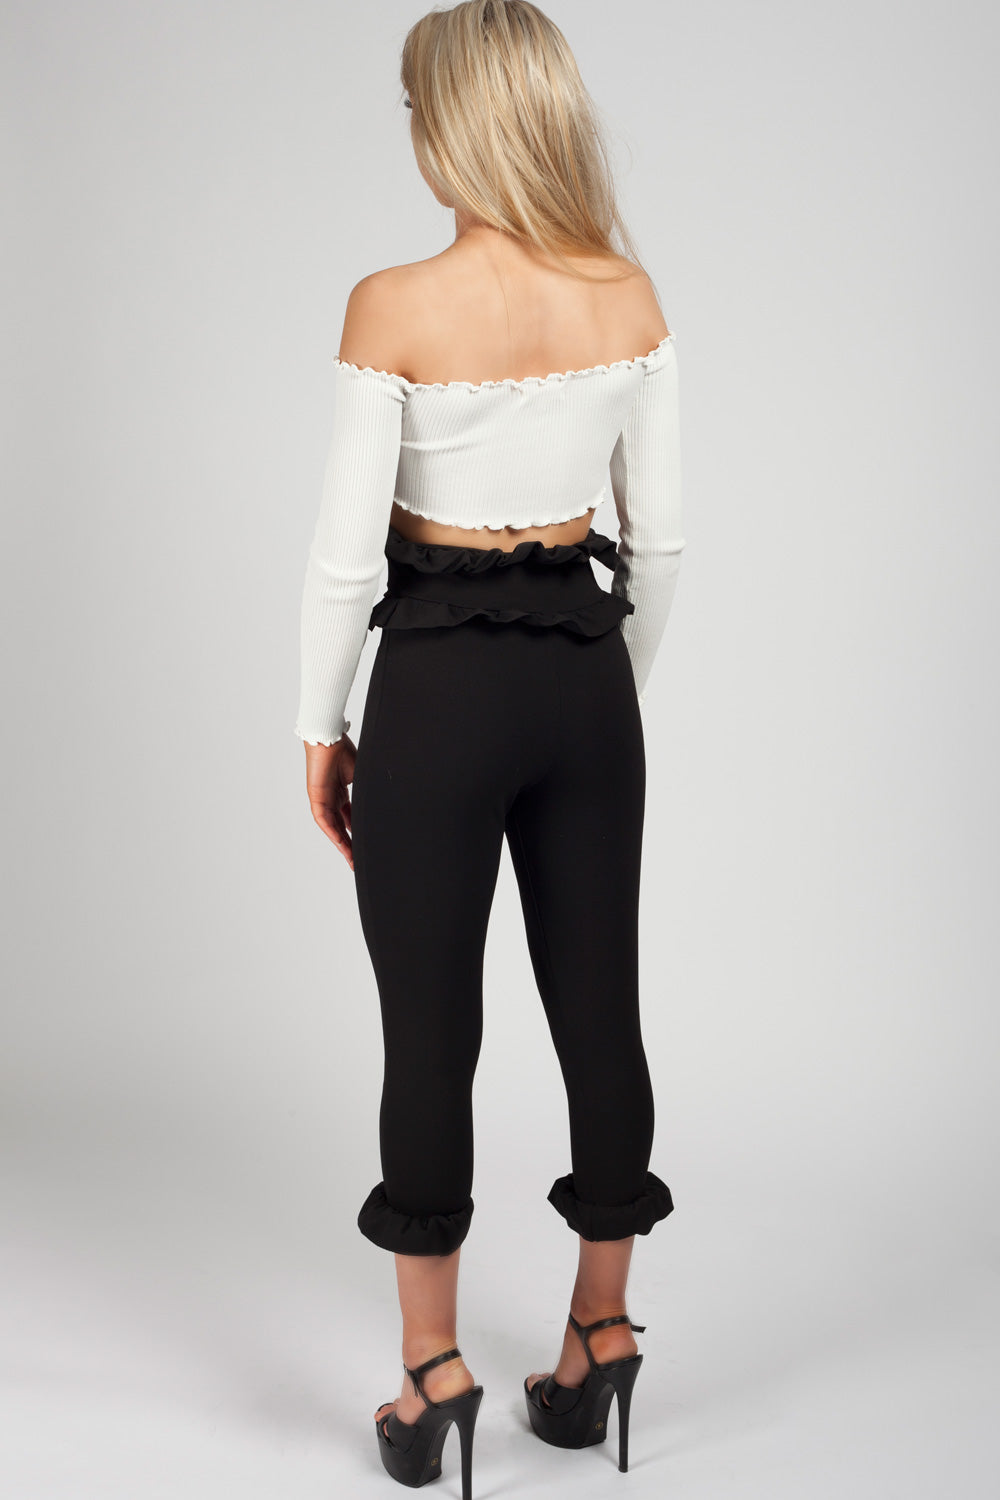 long sleeve crop top uk